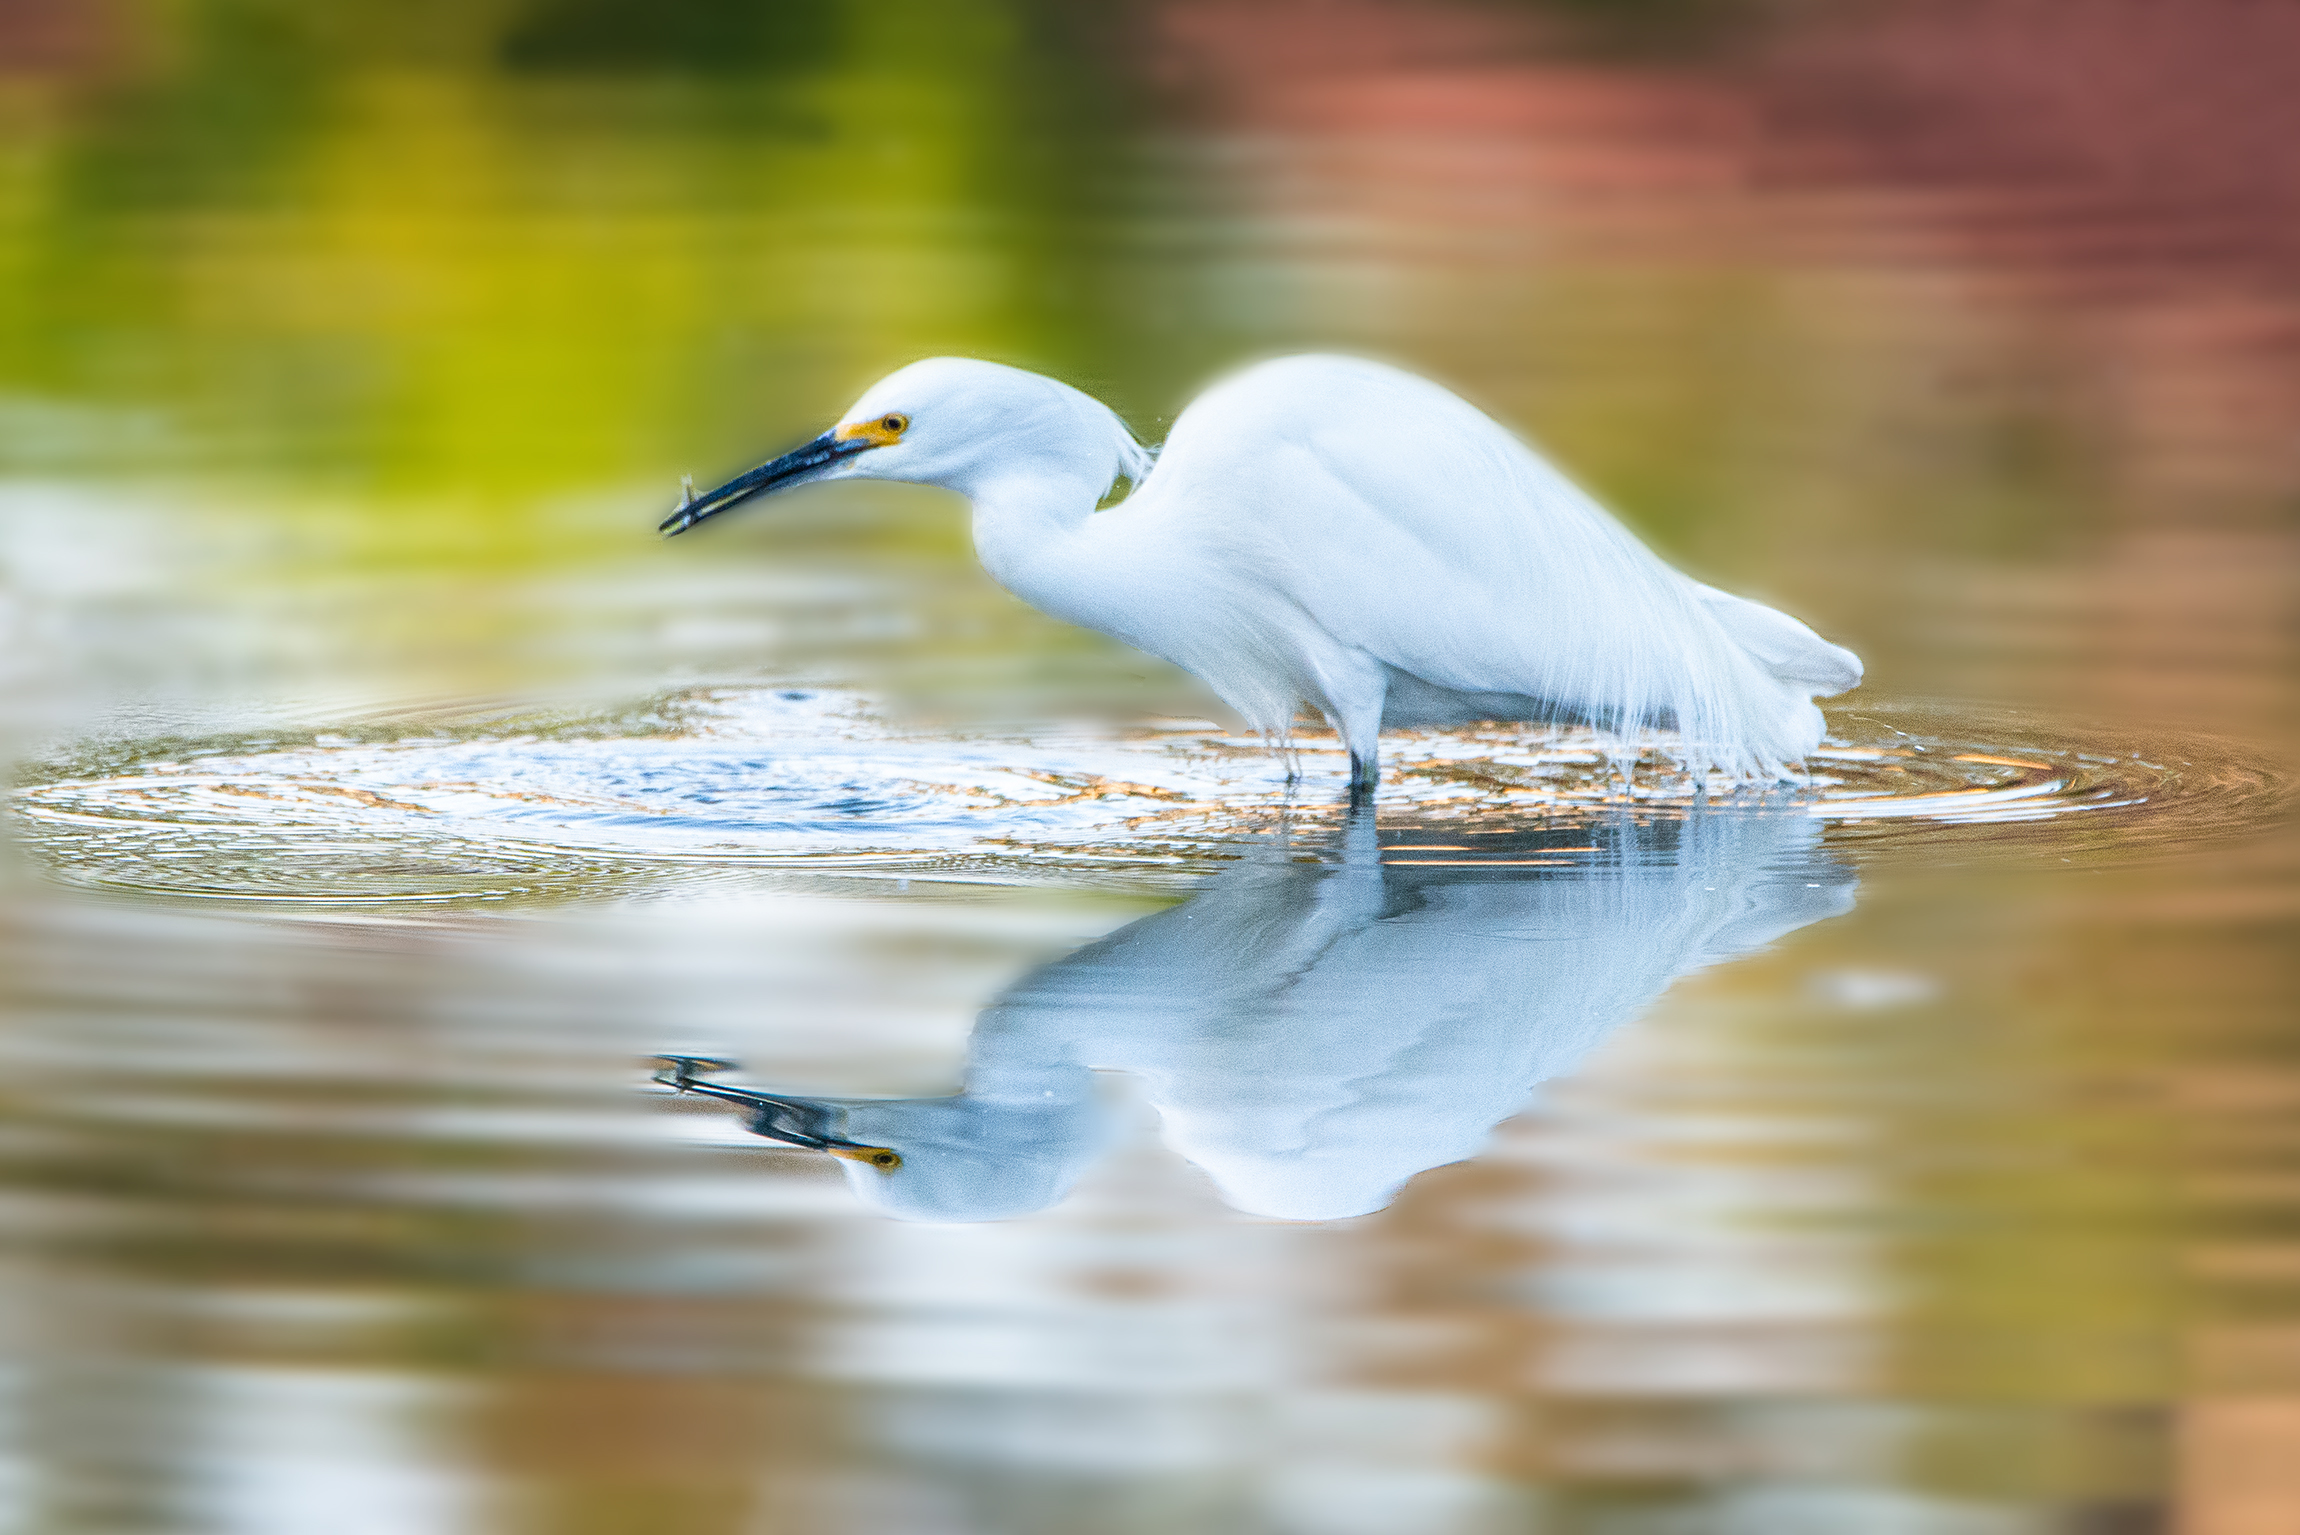 #greategret, #reflection, #lake, #light, #morninglight, #earlybird, #fishing, #color, #dawn, #florida, #naplesflorida